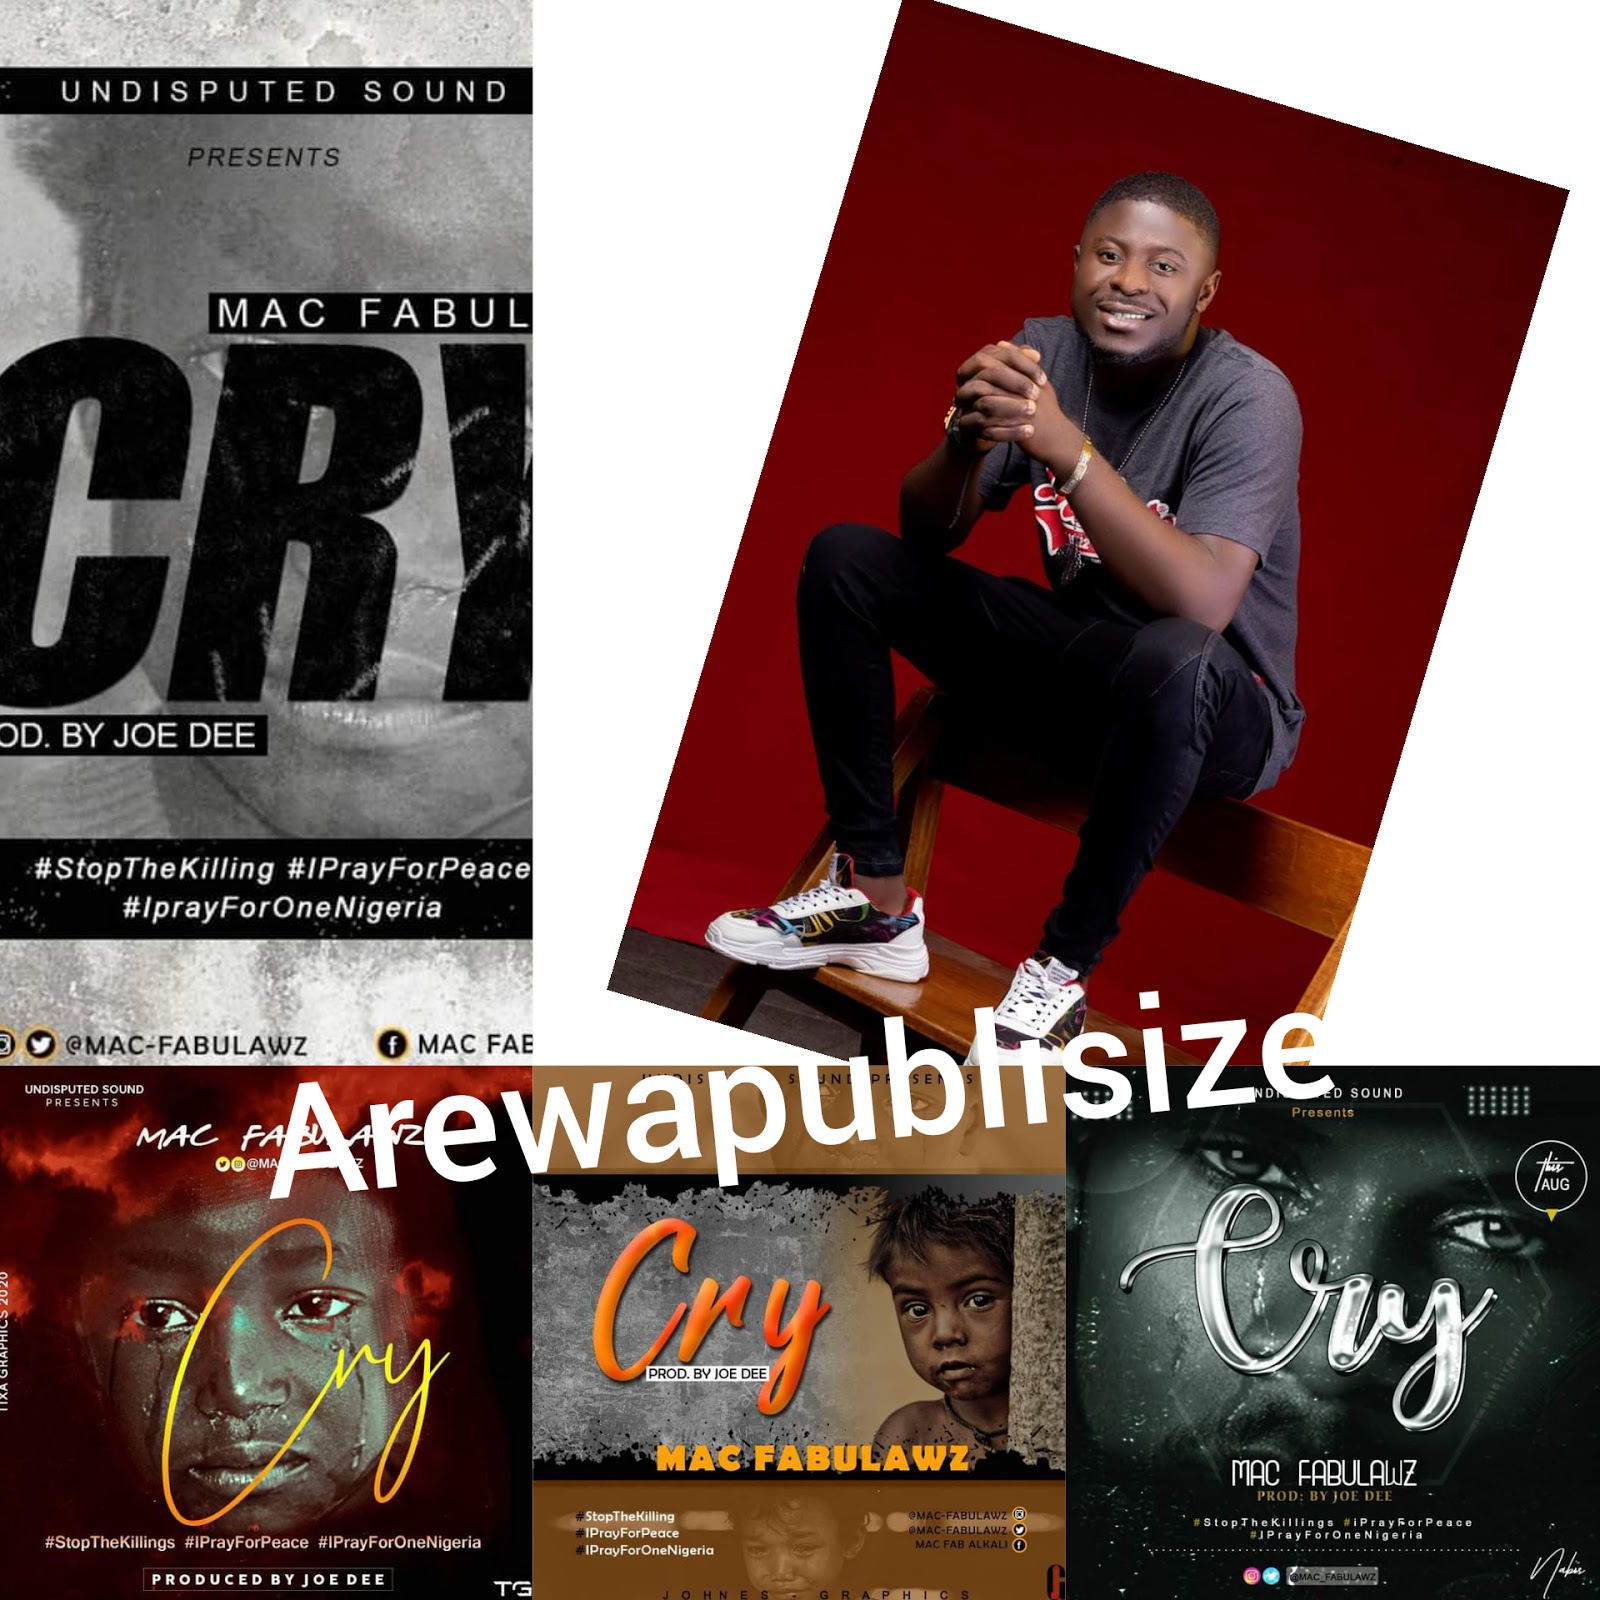 [Lyrics + video ] Mac fabulawz - Cry (prod. Joe dee) #Arewapublisize